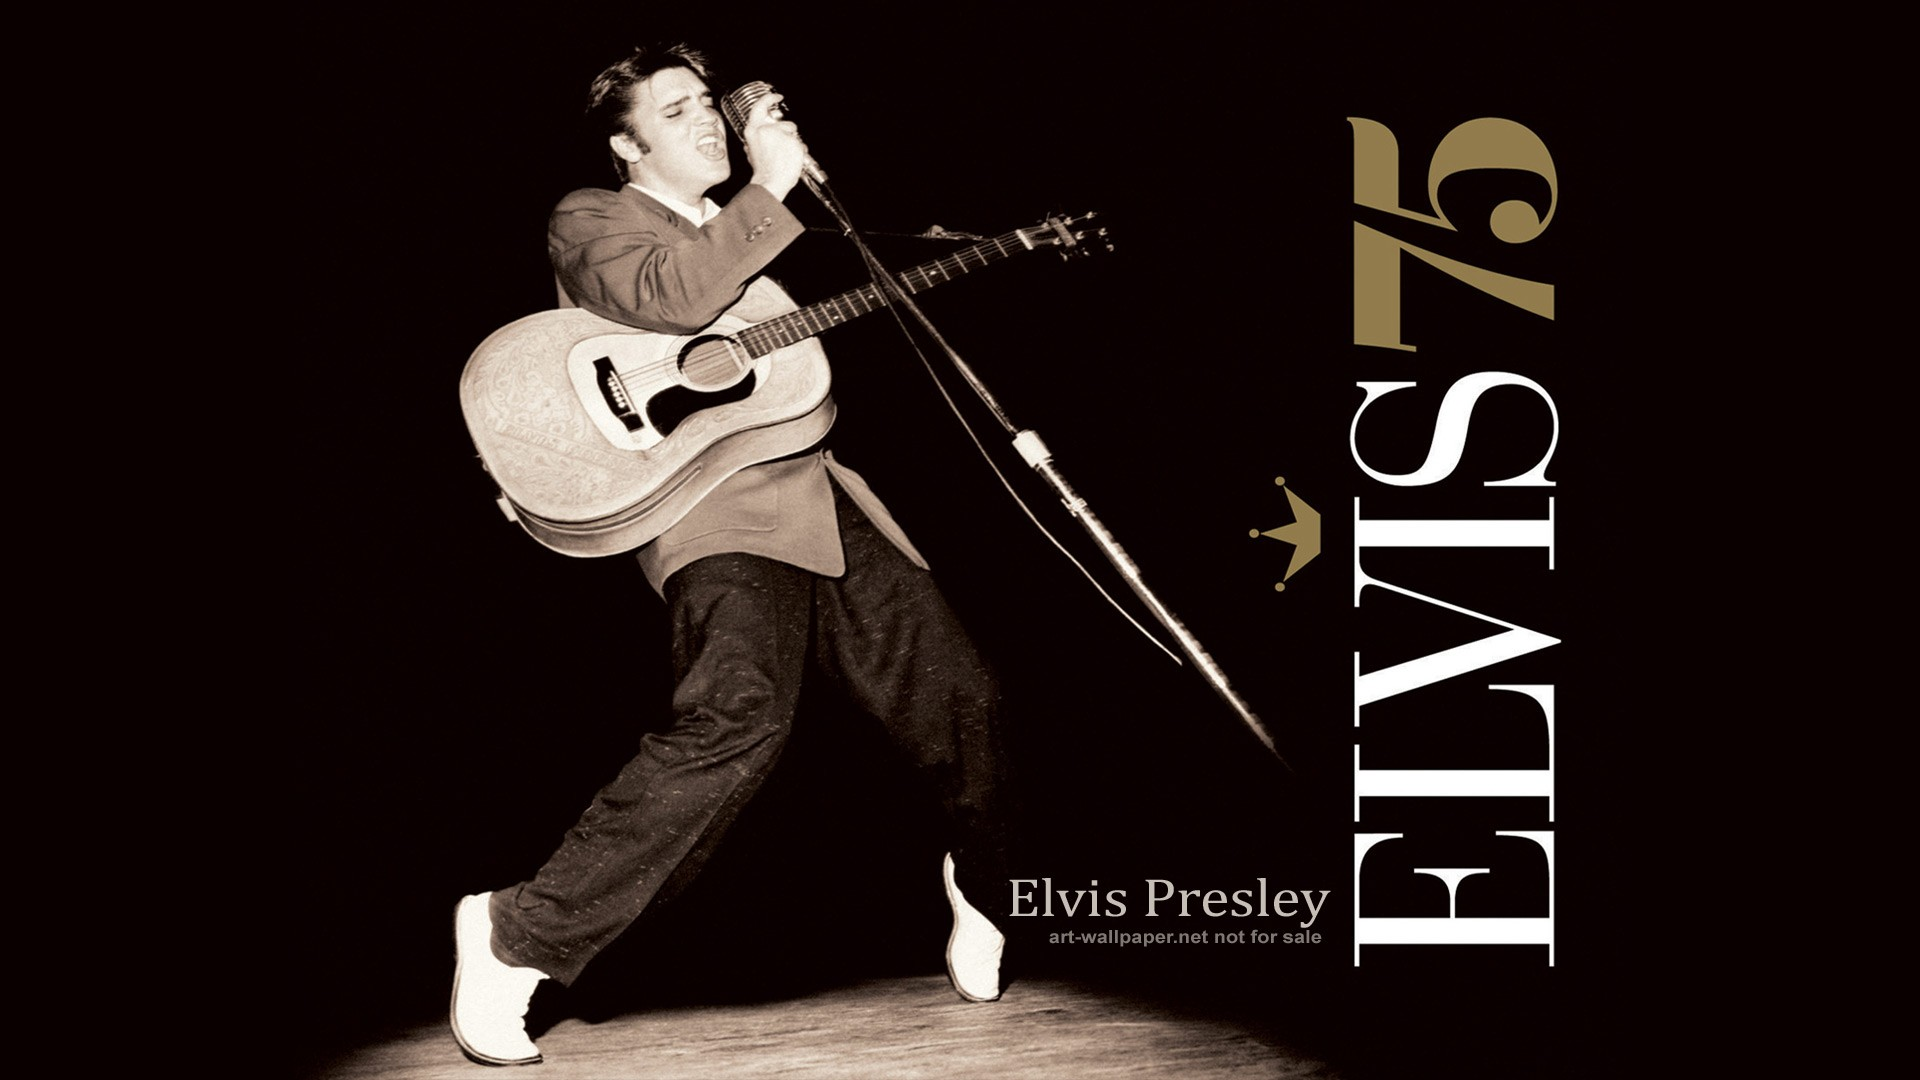 Elvis Presley Wallpaper Download Free Amazing Hd HD Wallpapers Download Free Images Wallpaper [1000image.com]